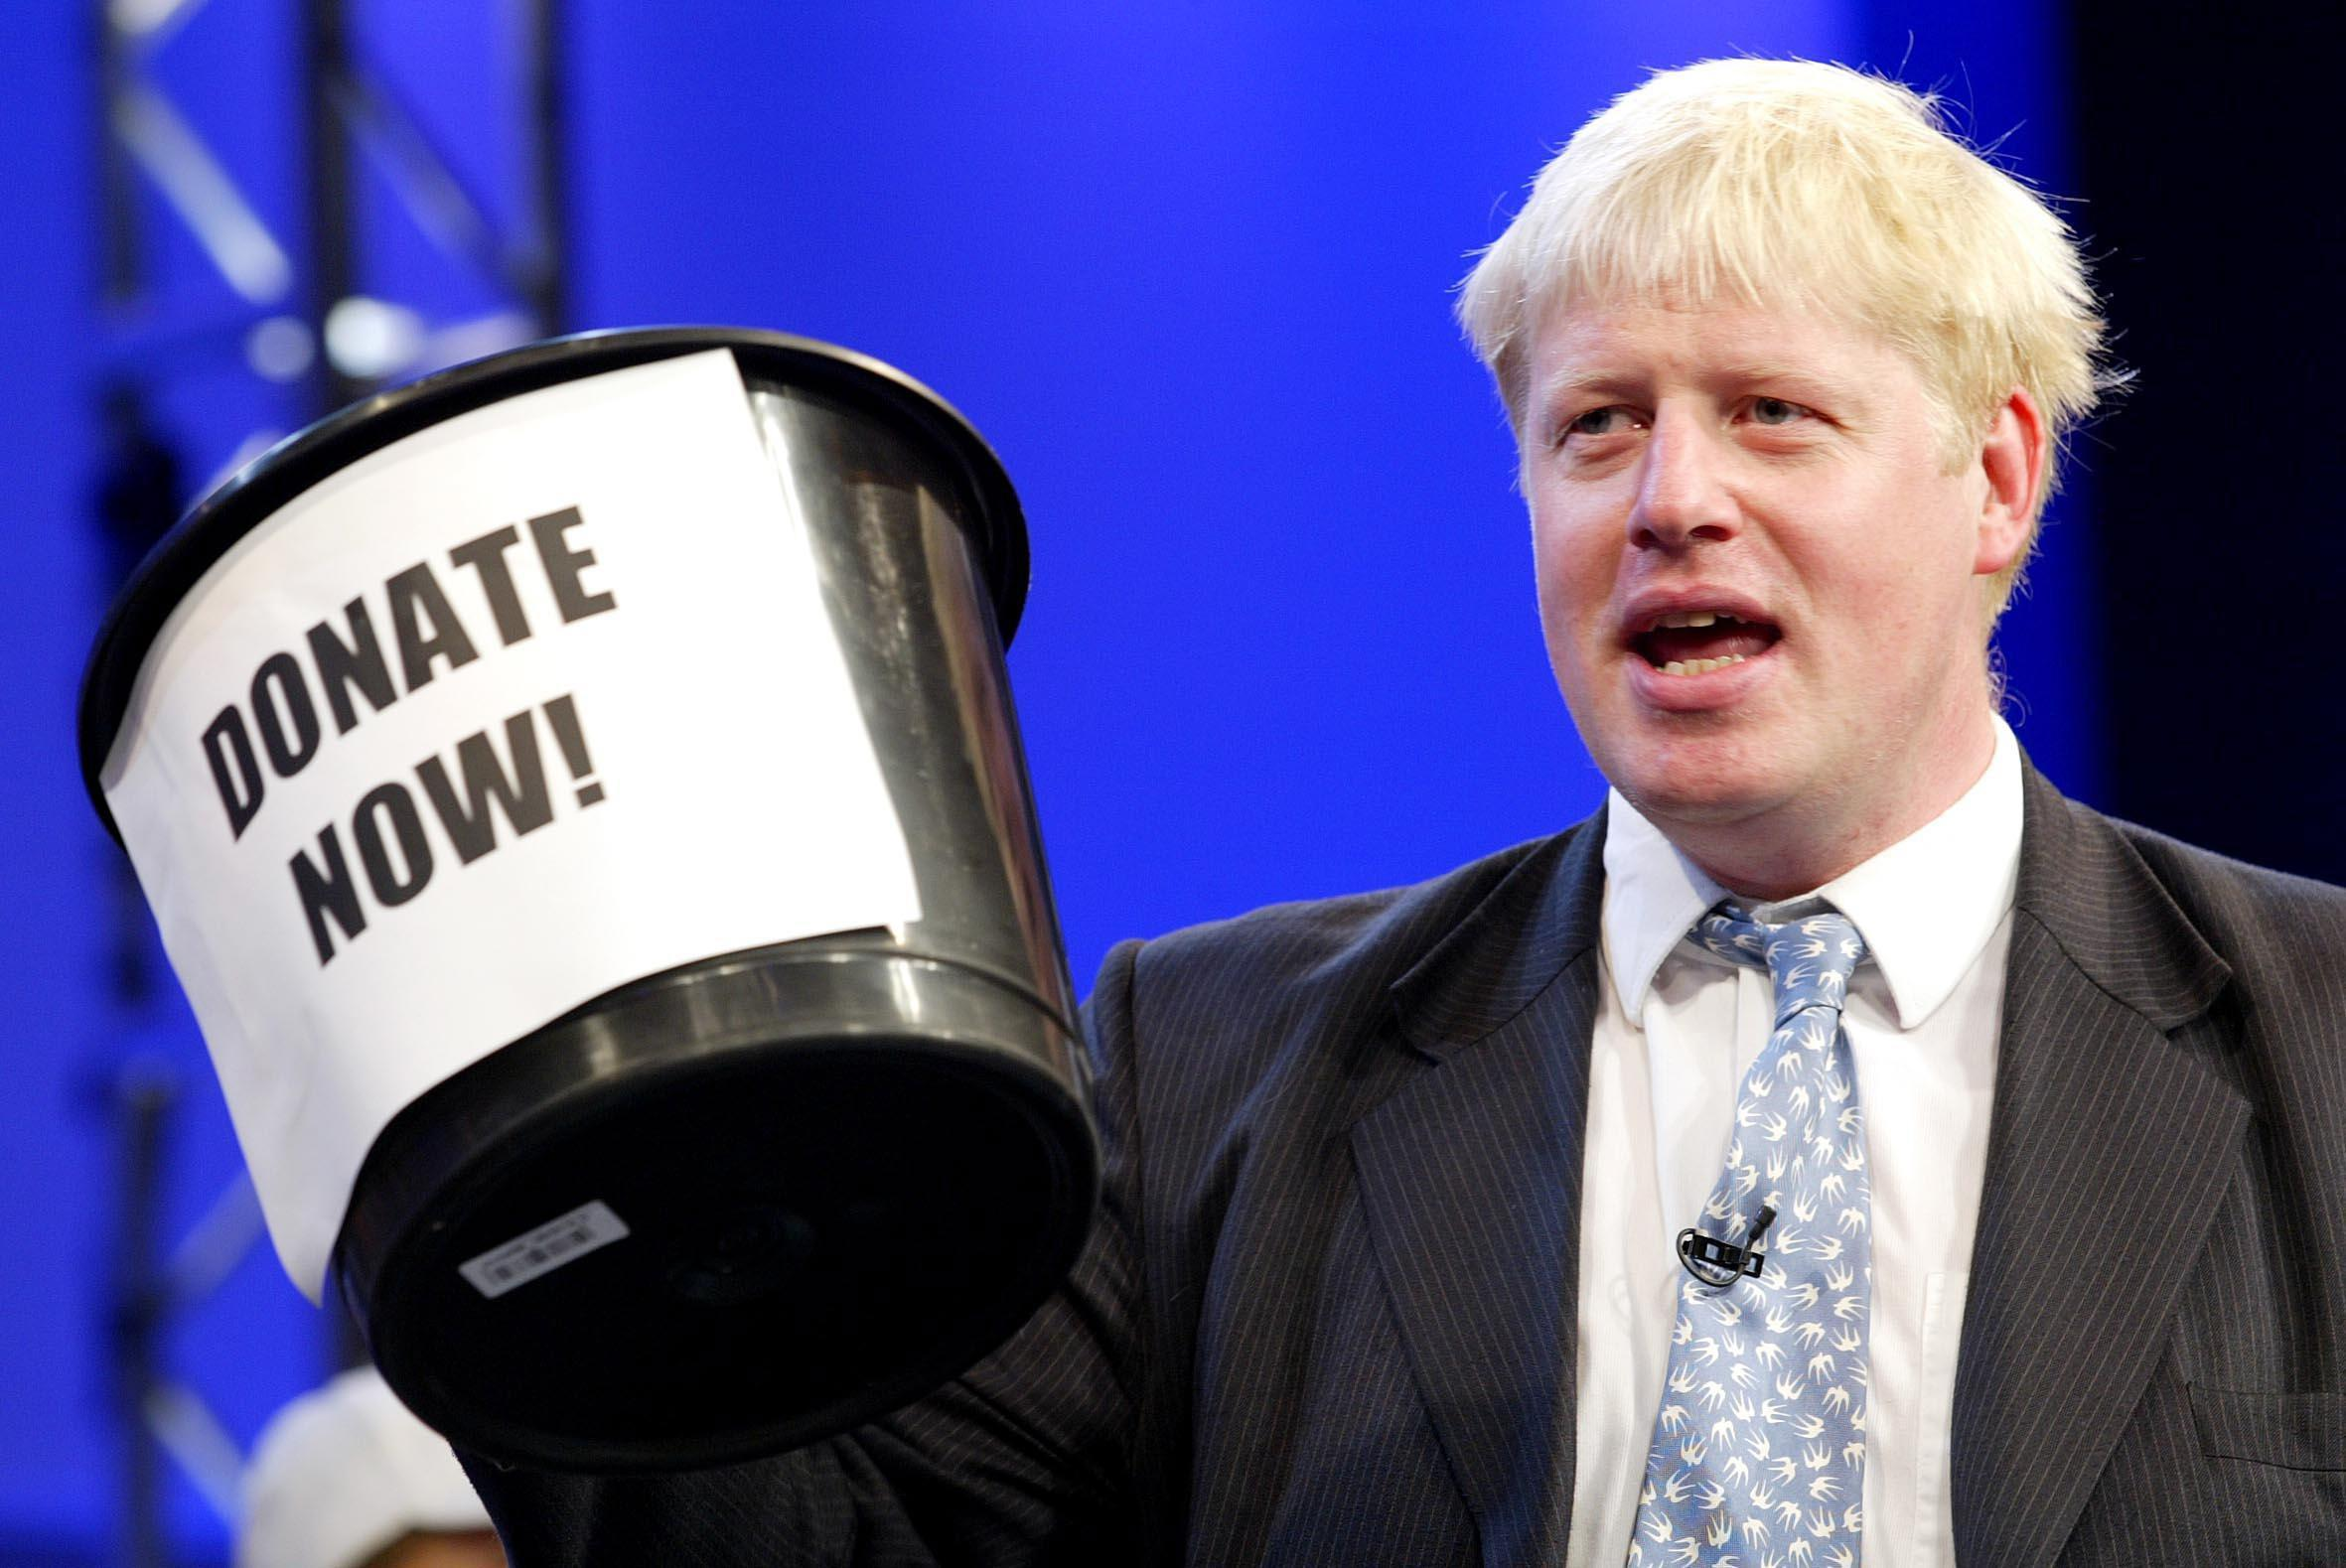 """Shadow Arts Minister Boris Johnson campaigns for donations from delegates at the Conservative Party Annual Conference in Bournemouth. 15/10/2004: Tory MP Boris Johnson who edits The Spectator magazine where a leading article has accused Liverpudlians of wallowing in what they regard as their """"victim status"""" over the murder of Ken Bigley and the Hillsborough football disaster in 1989."""